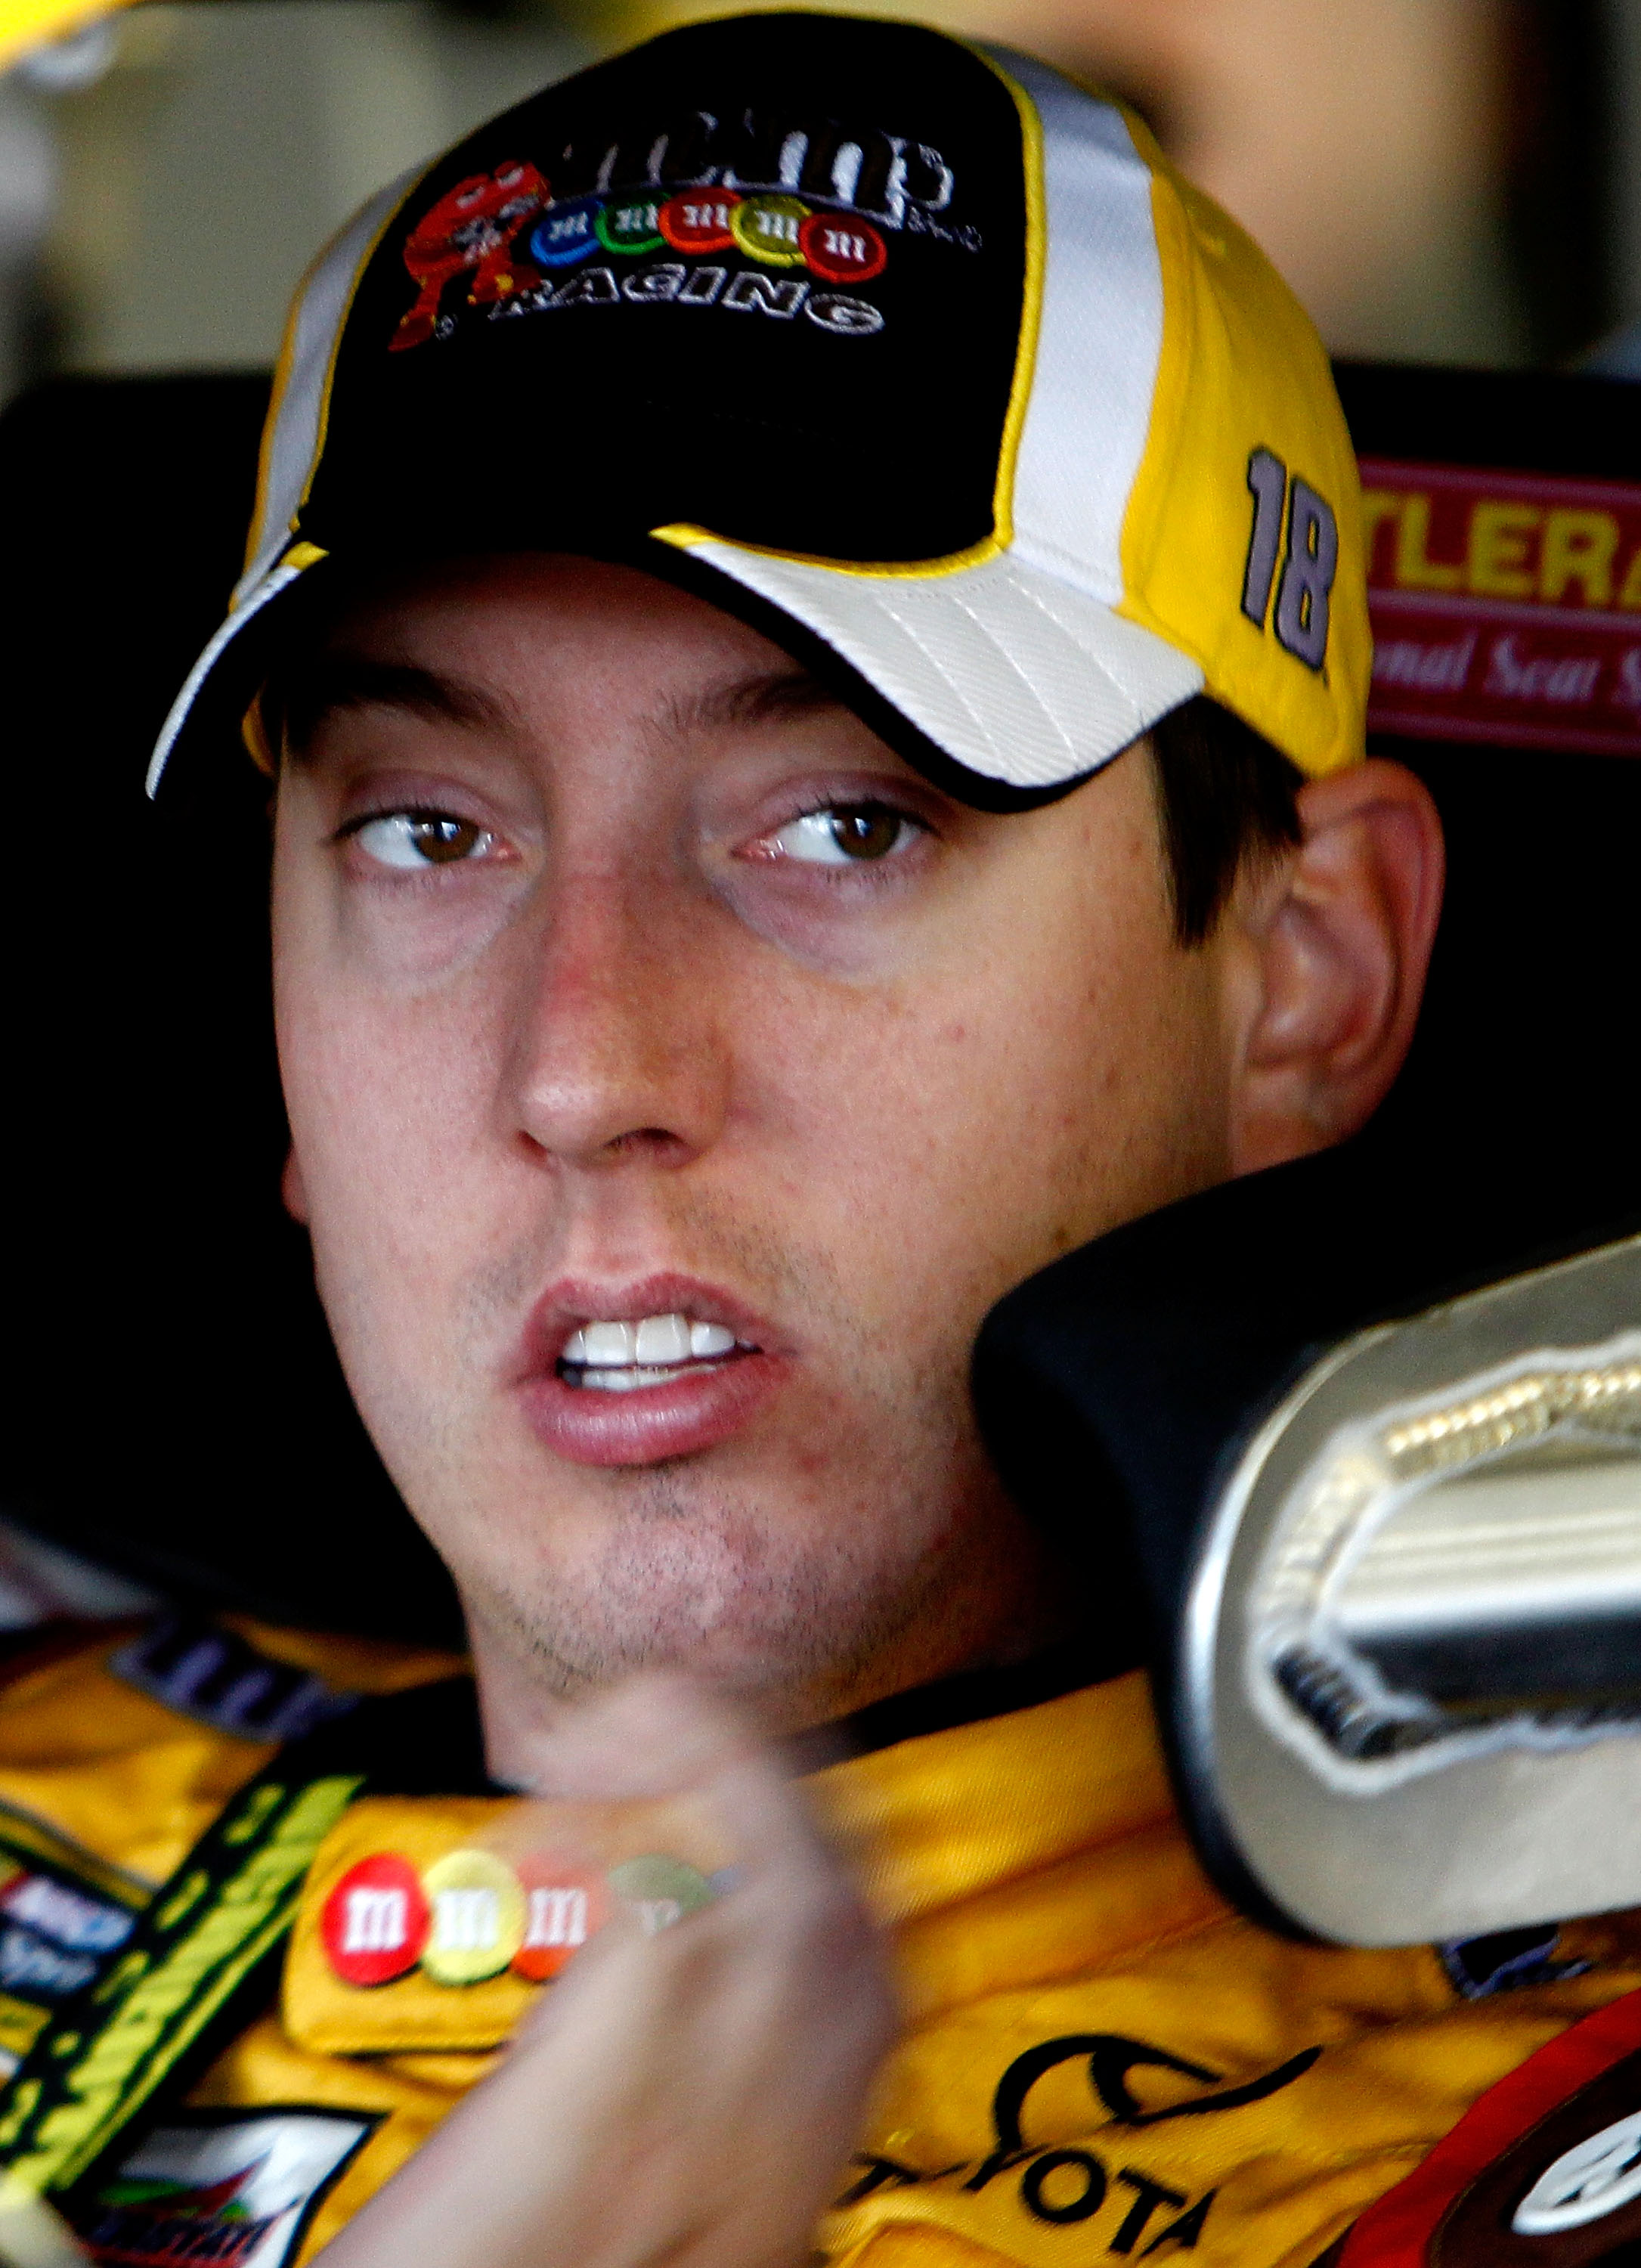 LOUDON, NH - SEPTEMBER 17:  Kyle Busch, driver of the #18 M&M's Toyota, looks on during practice for the NASCAR Sprint Cup Series Sylvania 300 at New Hampshire Motor Speedway on September 17, 2010 in Loudon, New Hampshire.  (Photo by Jeff Zelevansky/Getty